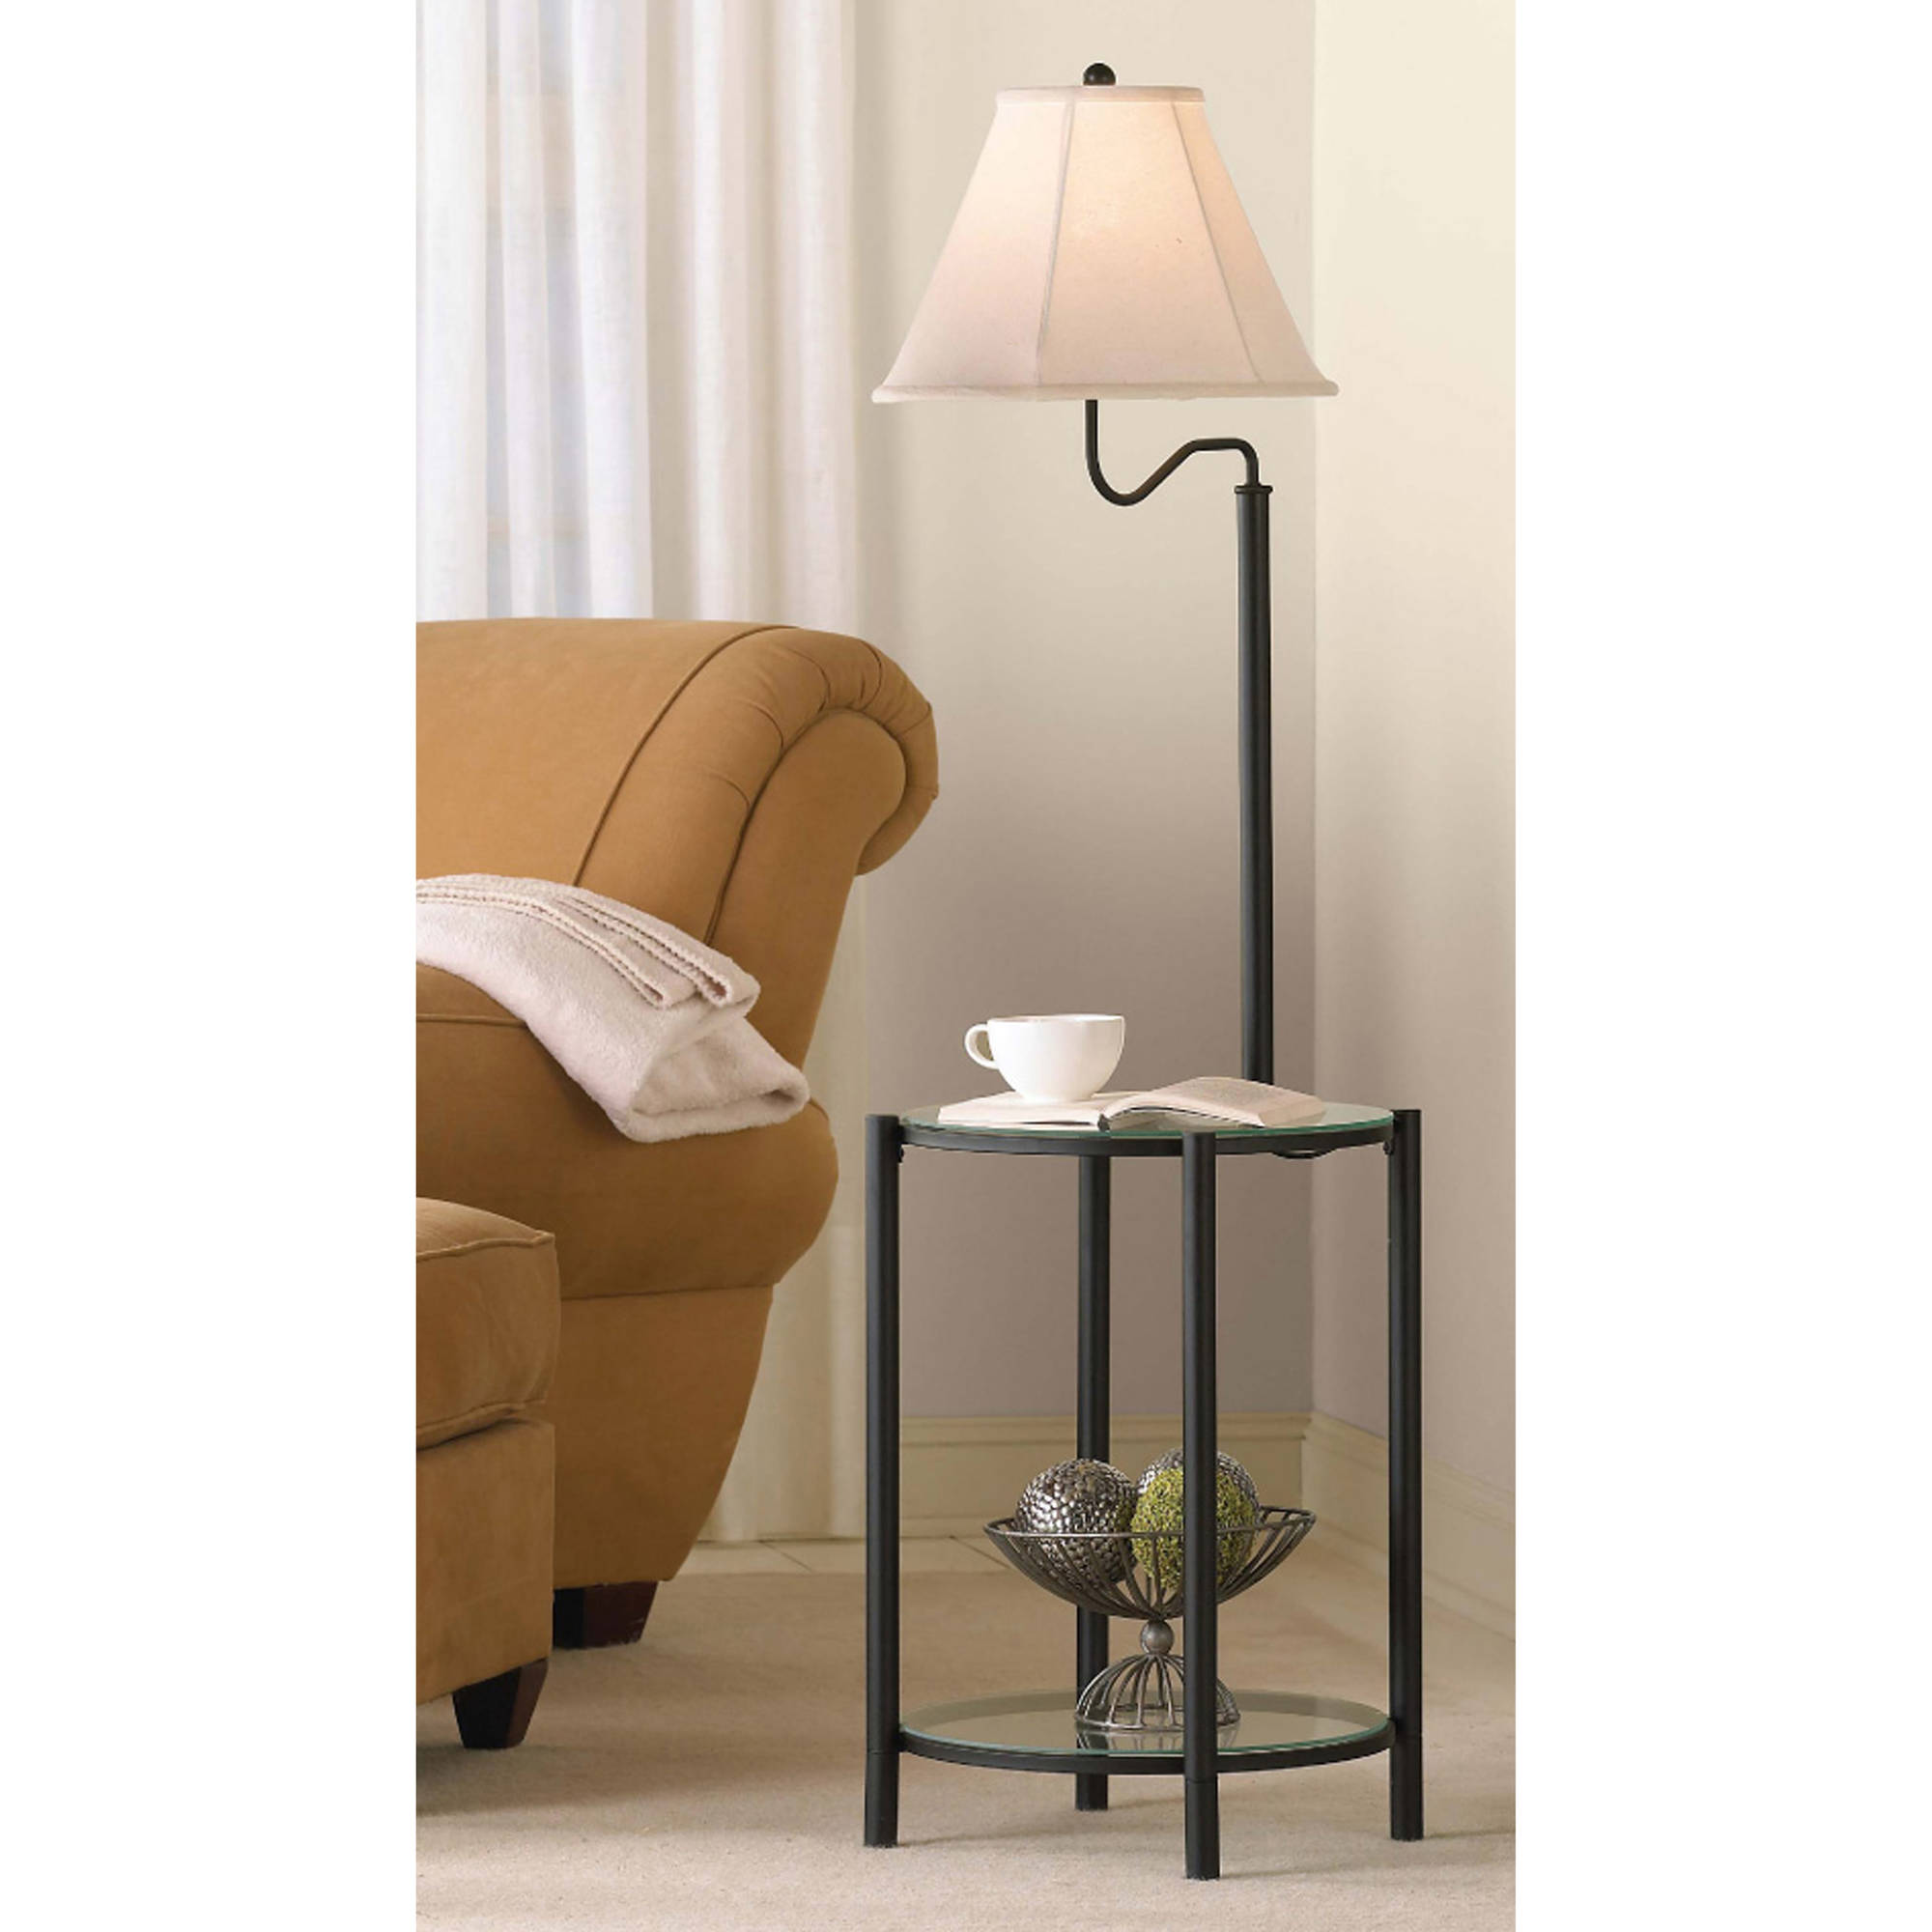 Mainstays Glass End Table Floor Lamp Matte Black CFL Bulb Included